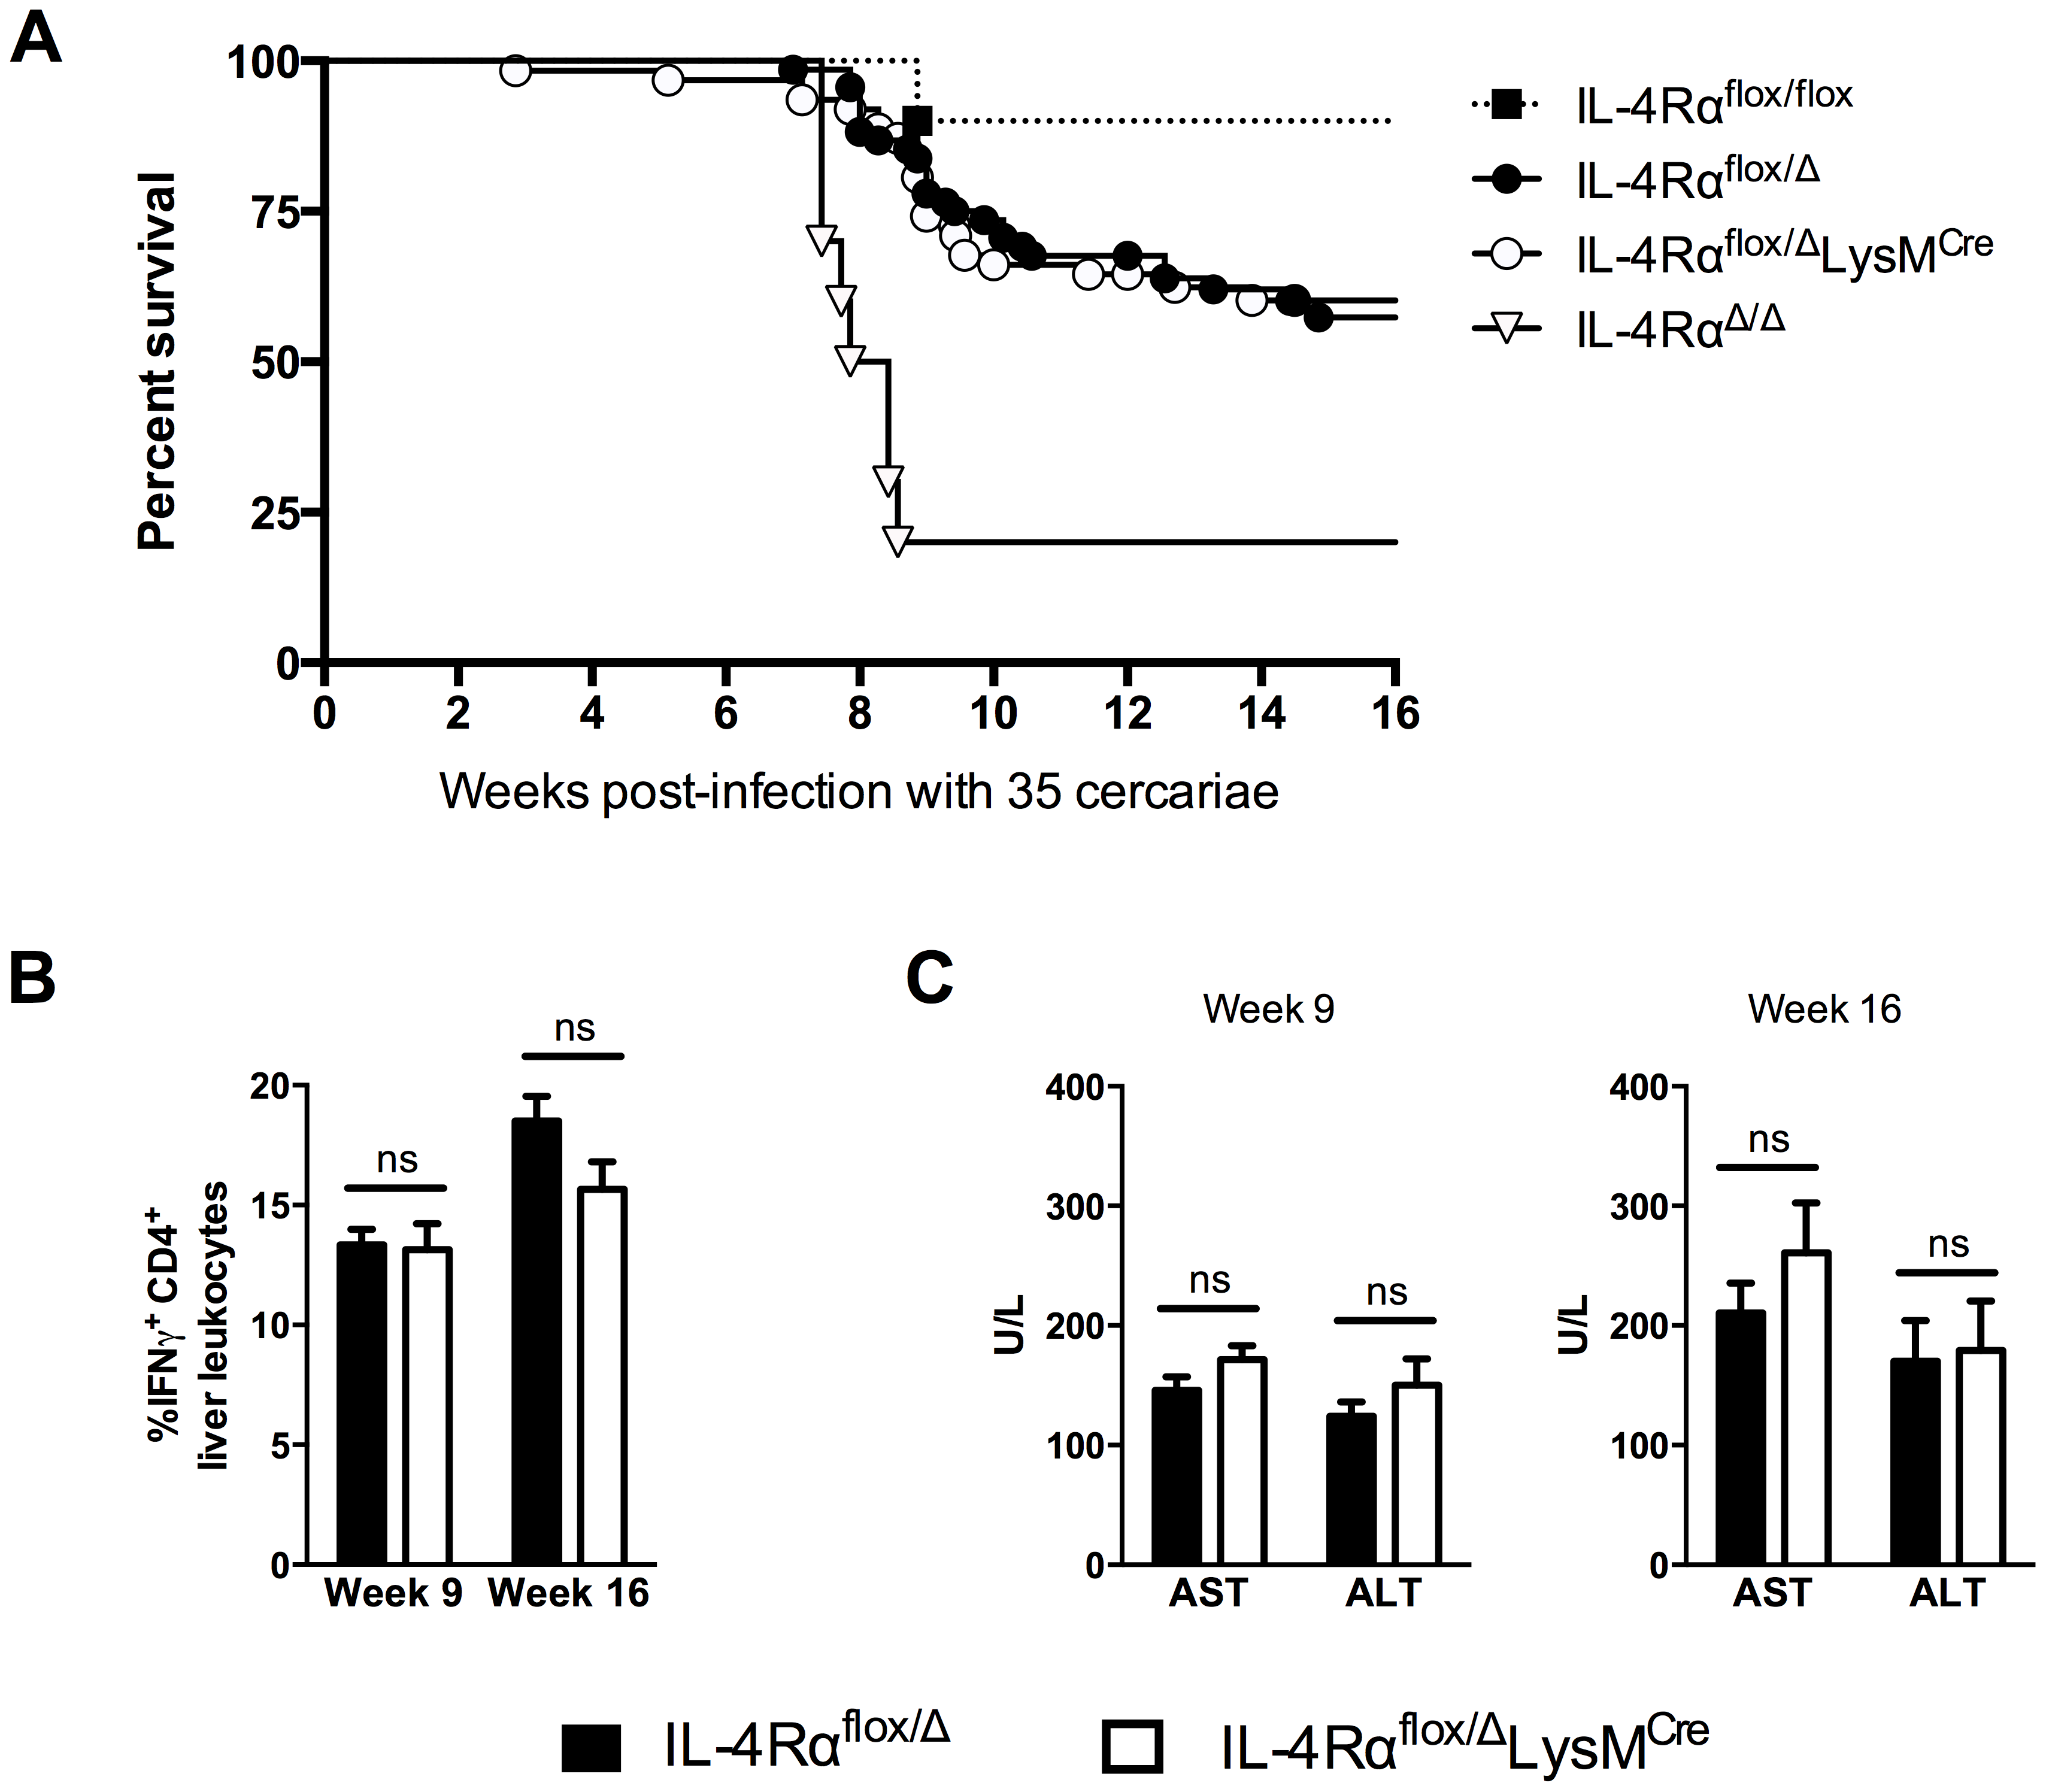 Surviving chronic <i>S. mansoni</i> infection depends on <i>Il4rα</i> allele, not LysM<sup>Cre</sup> expression.